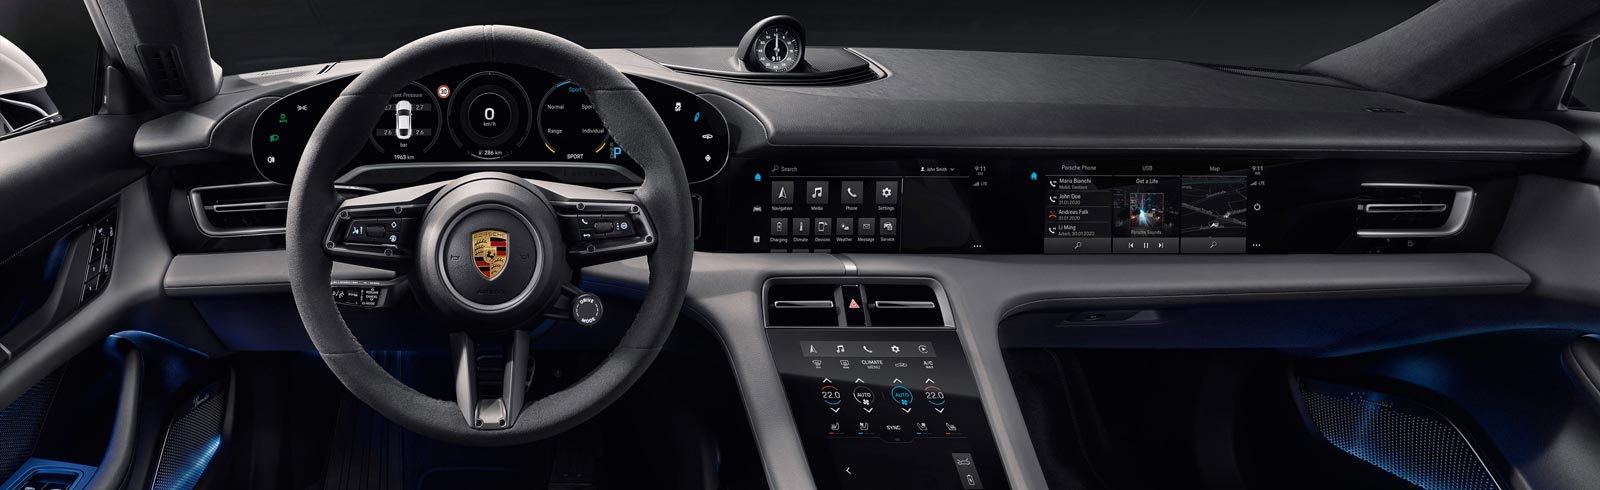 Porsche Taycan full interior unveiled